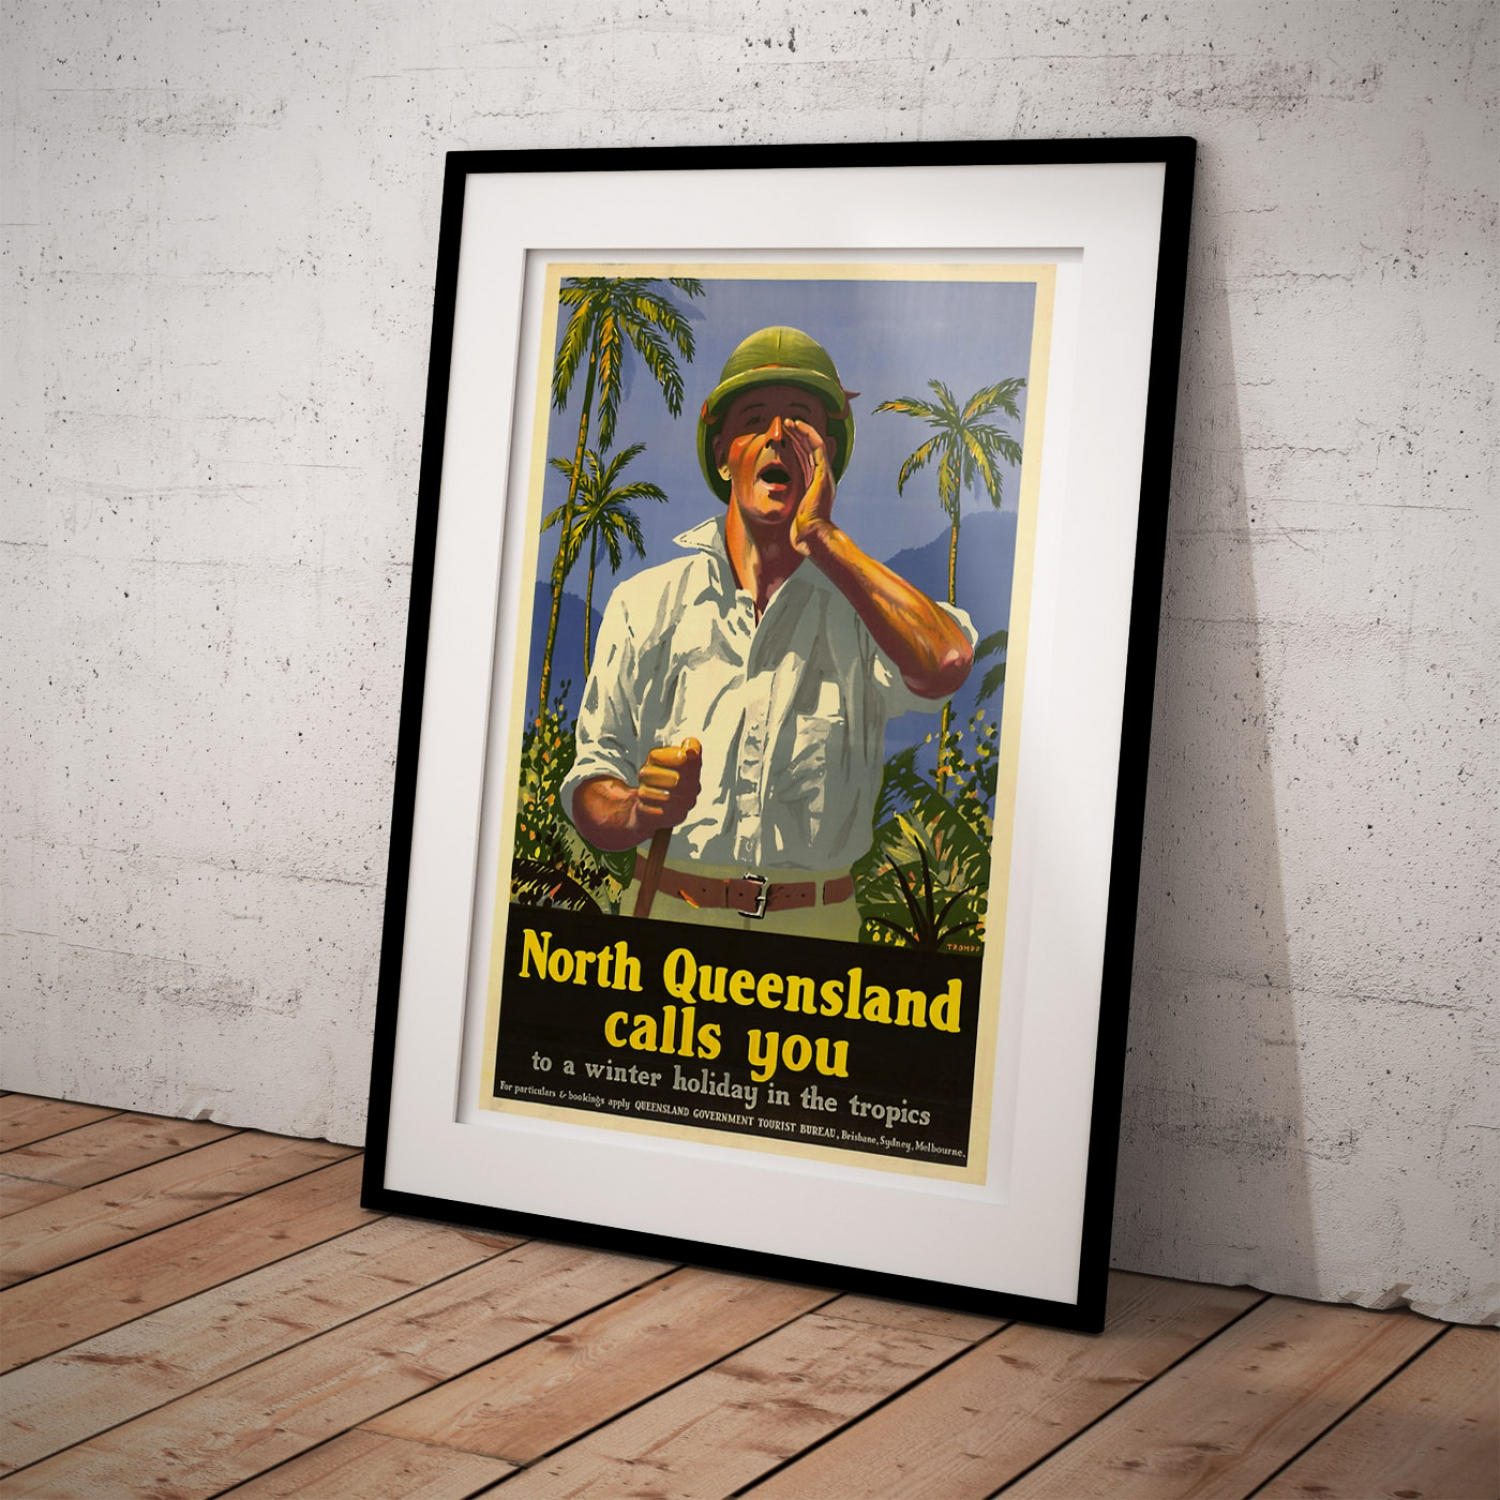 North Queensland Holiday Packages North Queensland Calls You Vintage Travel Poster Just Posters